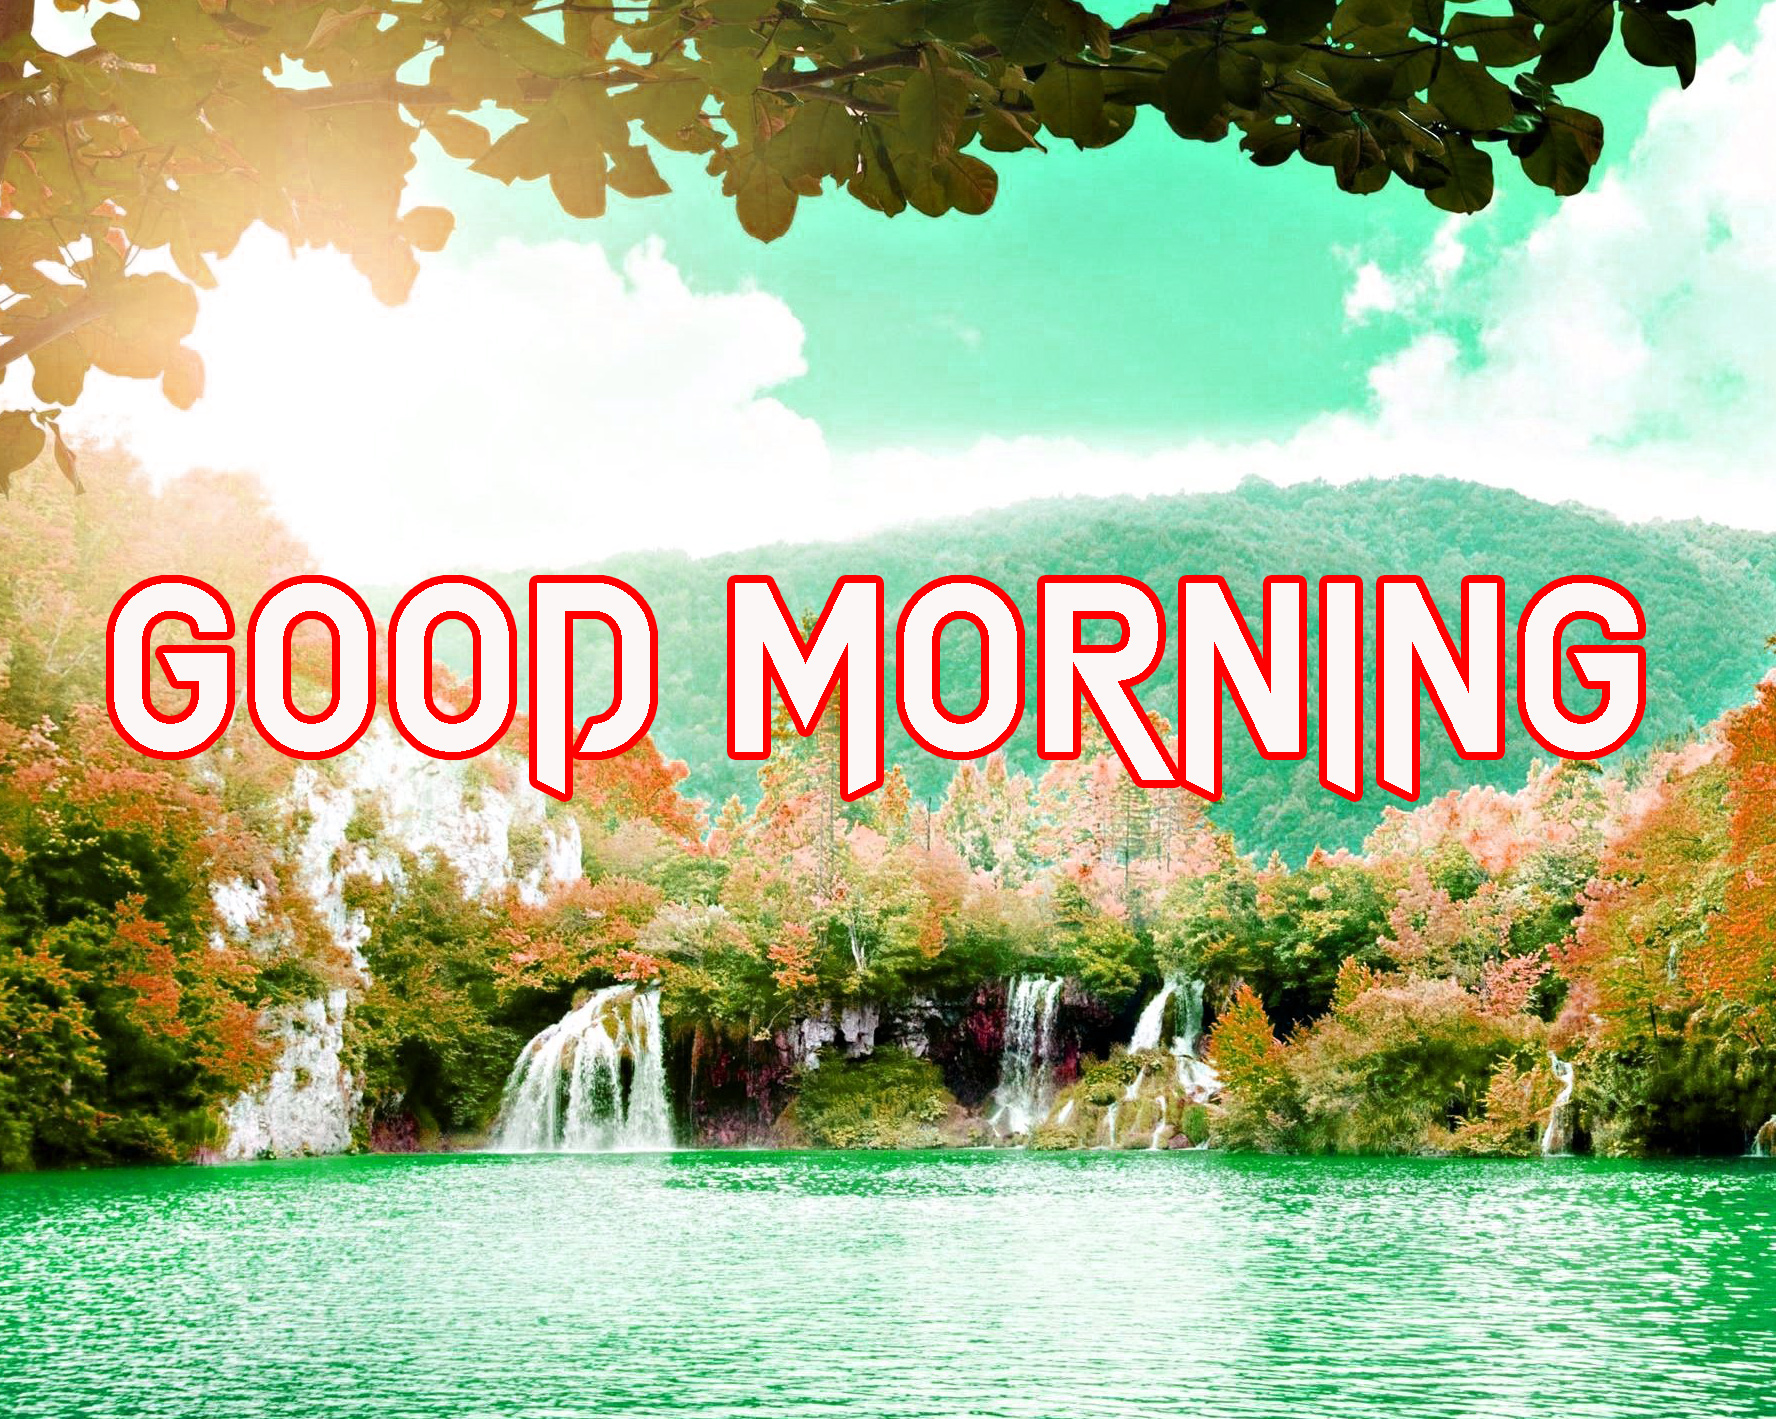 GOOD MORNING IMAGE PICTURES PHOTO HD DOWNLOAD